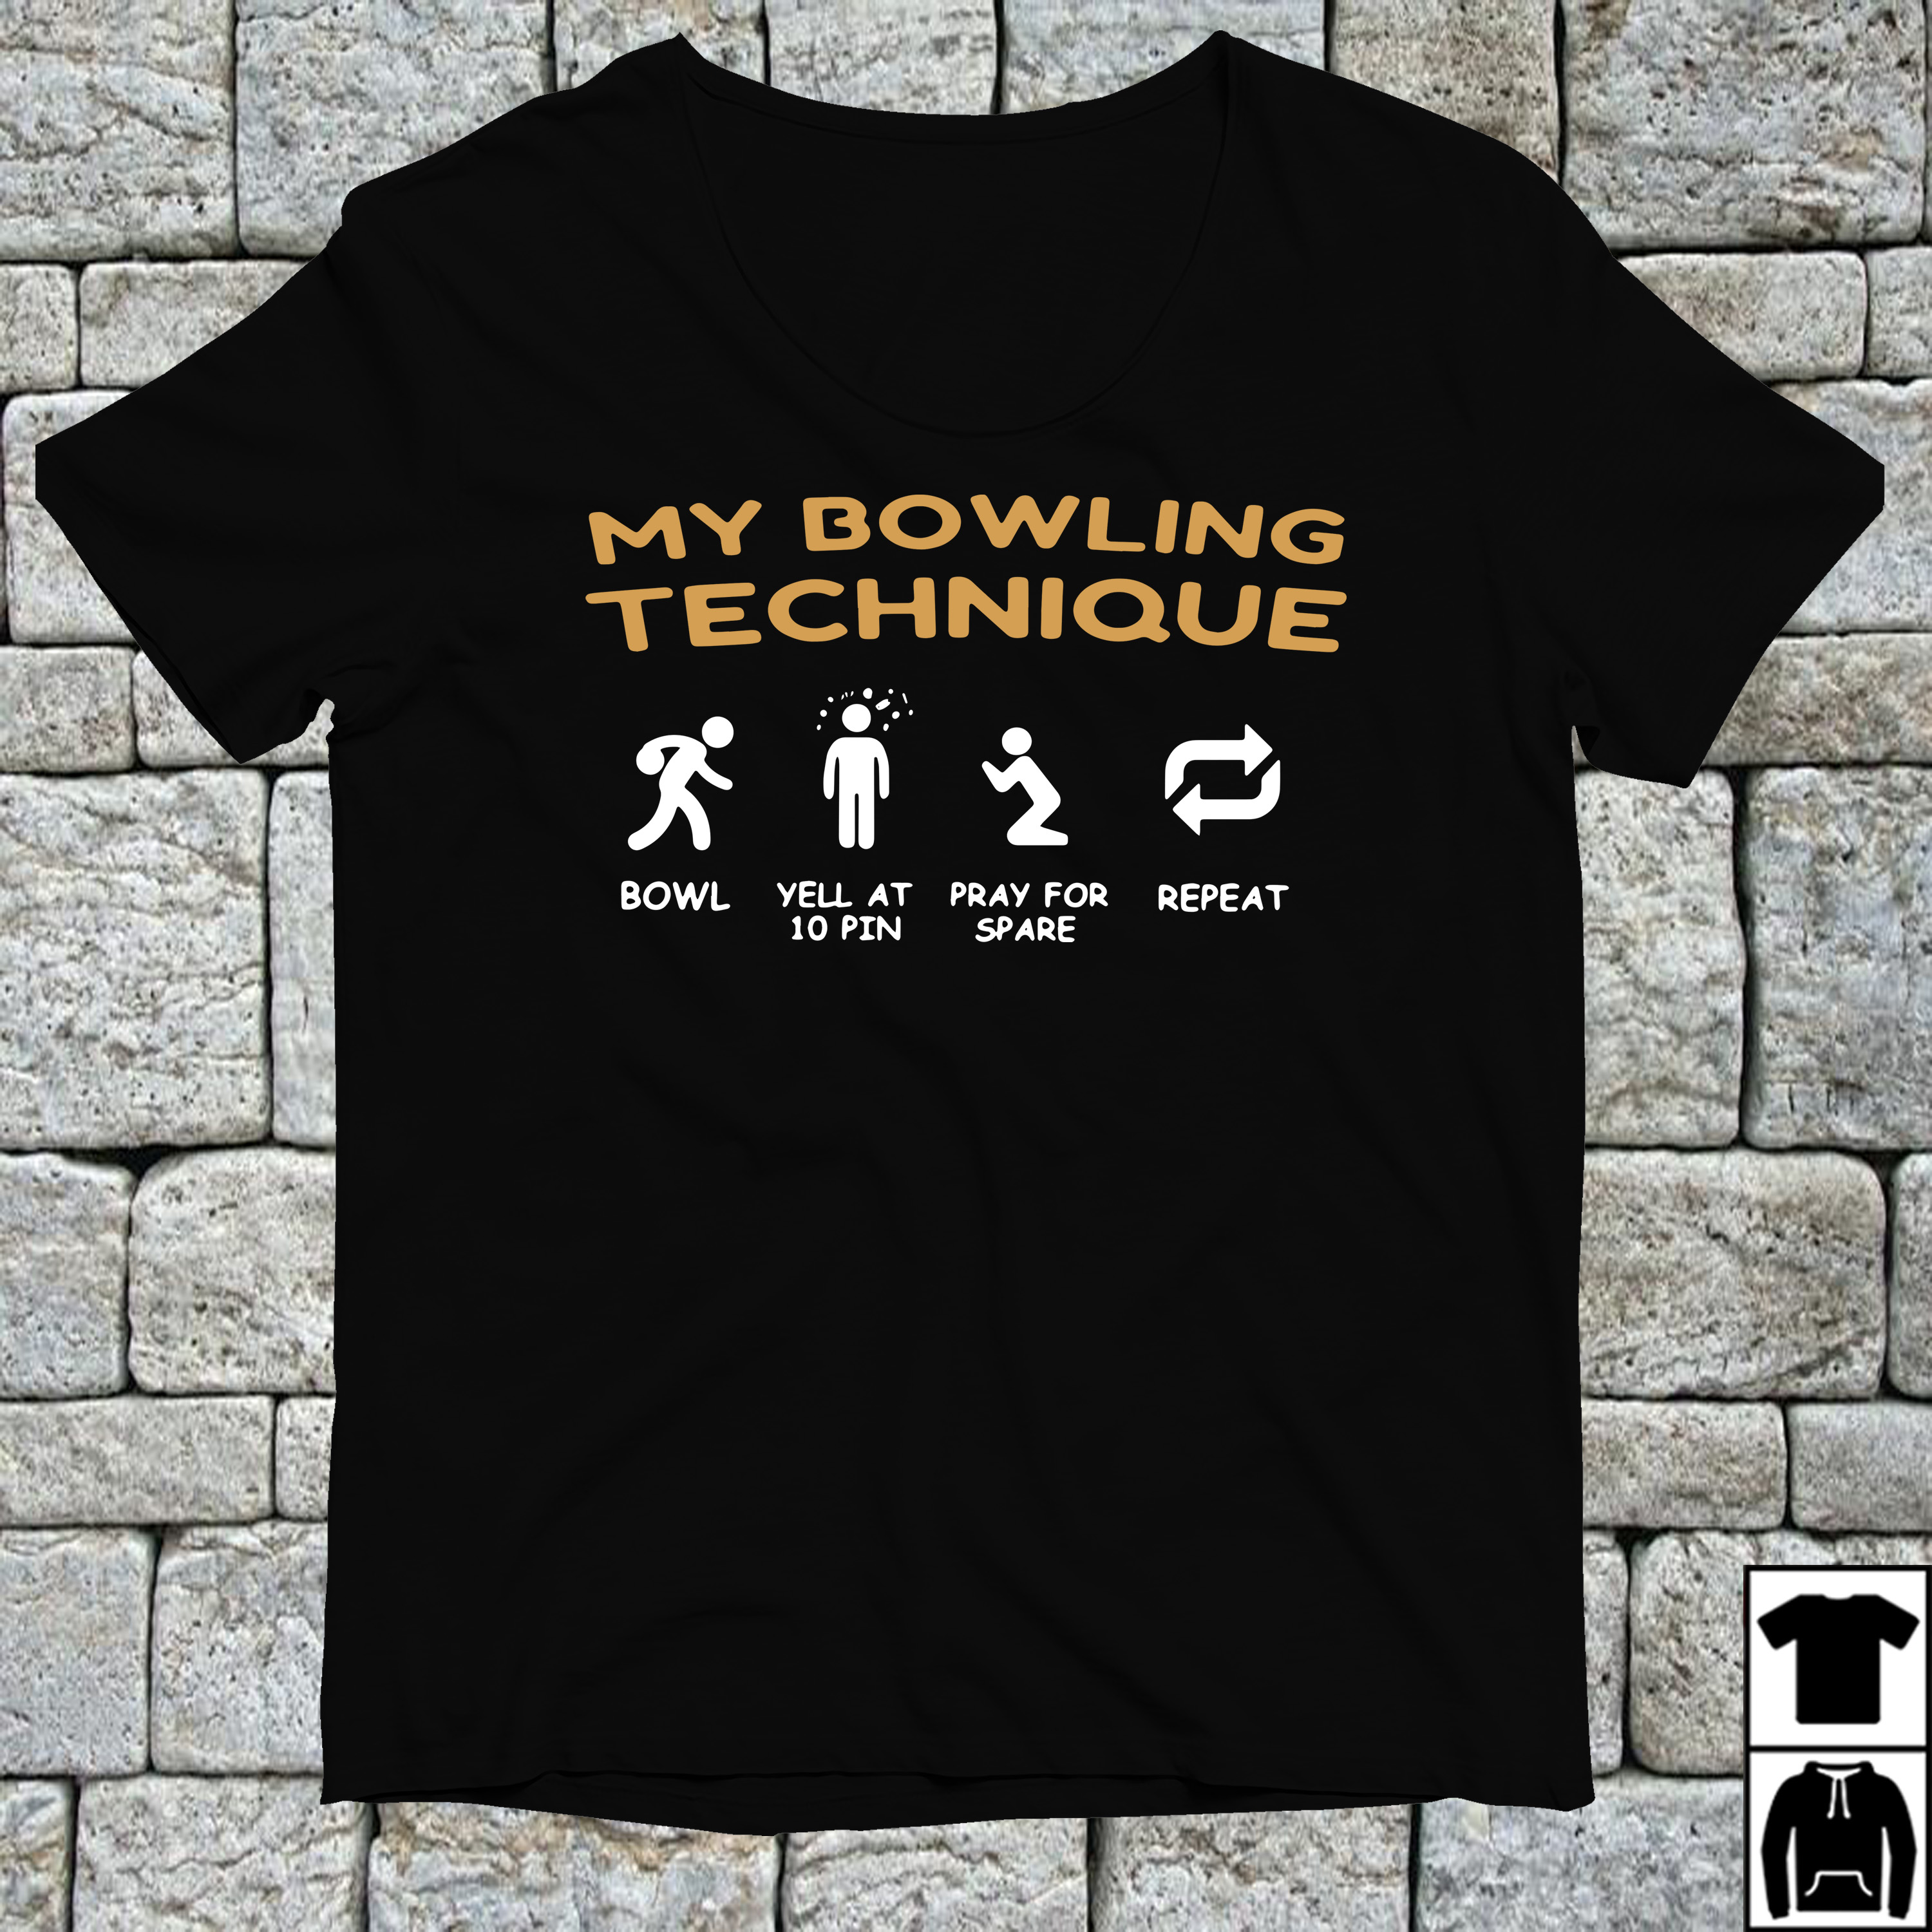 My bowling technique bowl yell at 10 pin prayfor space shirt